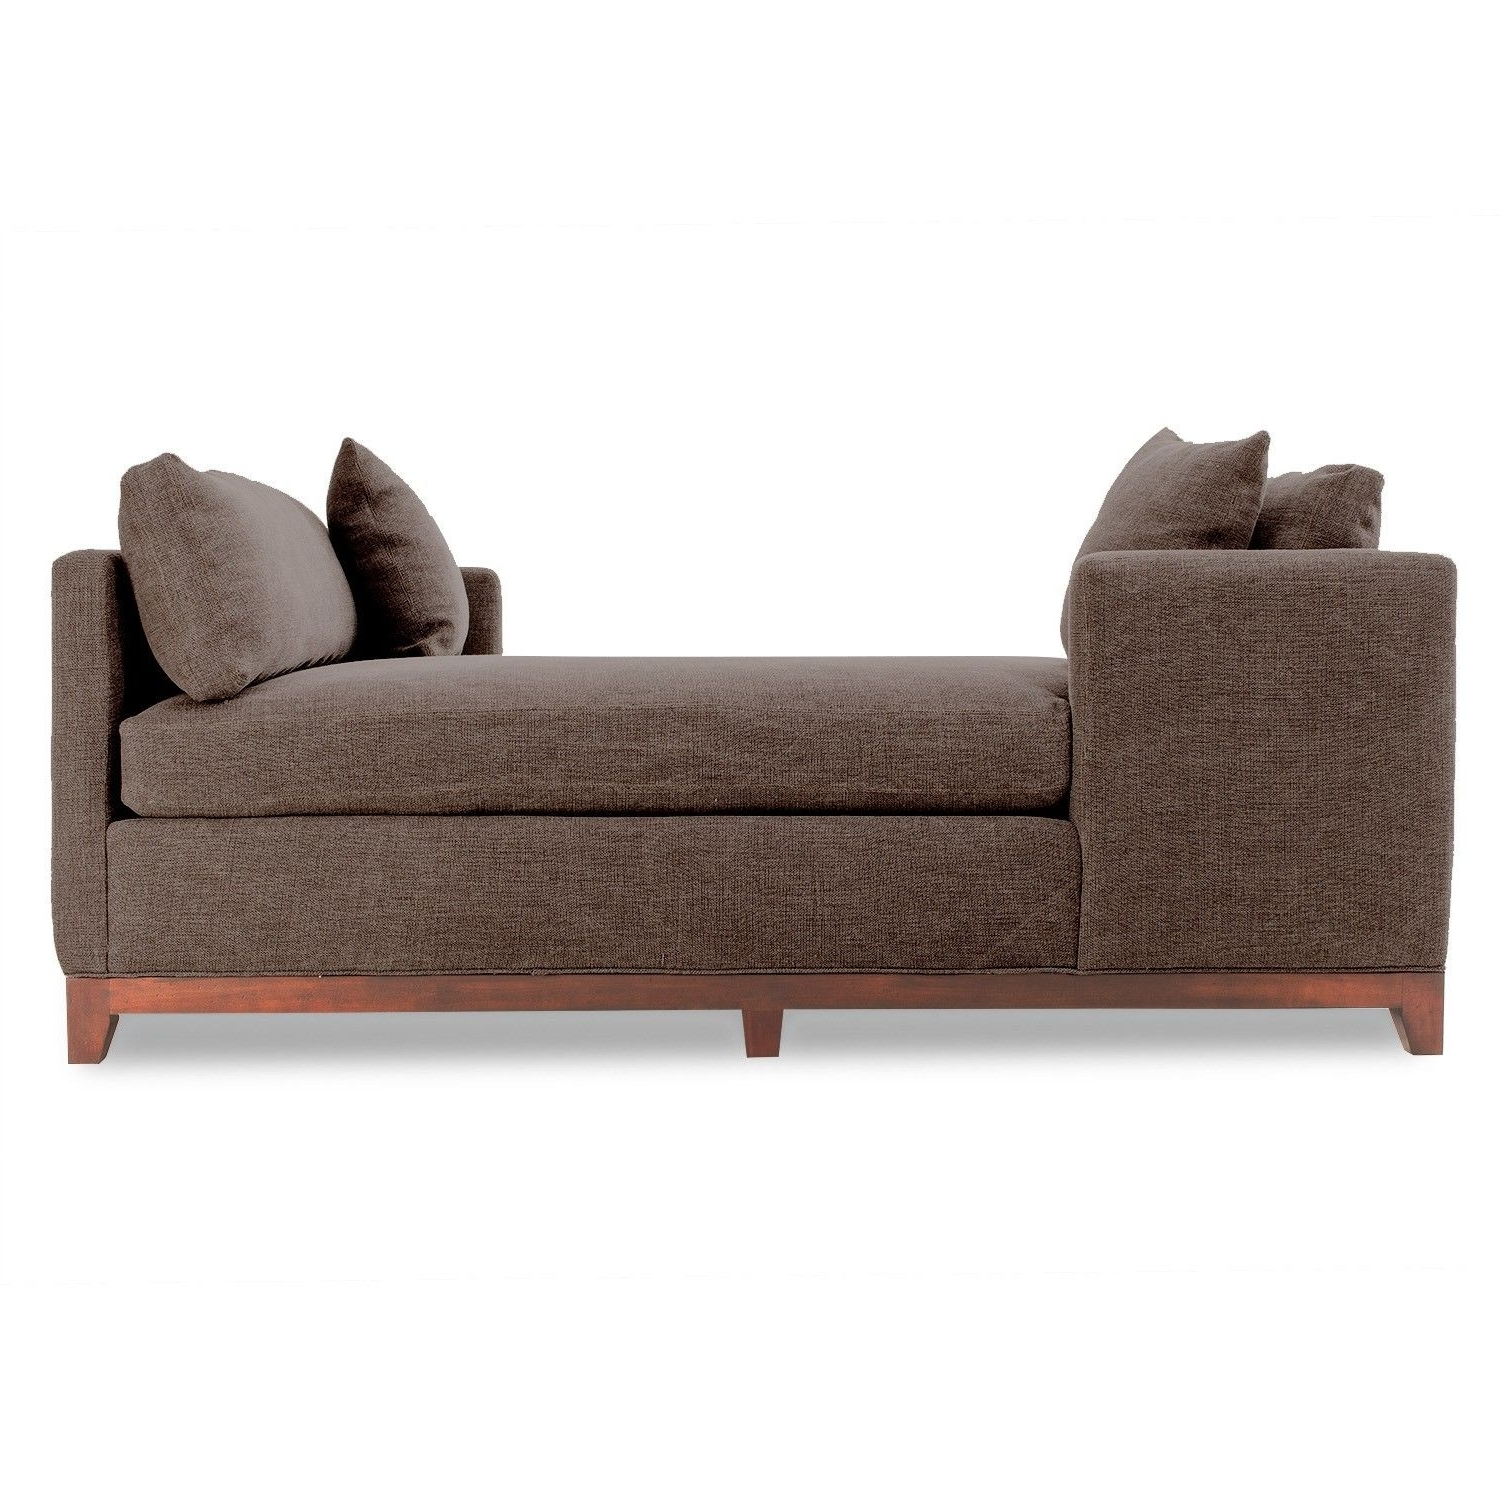 Trendy Chaise Lounge Sofa For Sale – Home And Textiles Pertaining To Chaise Lounge Sofas For Sale (View 6 of 15)